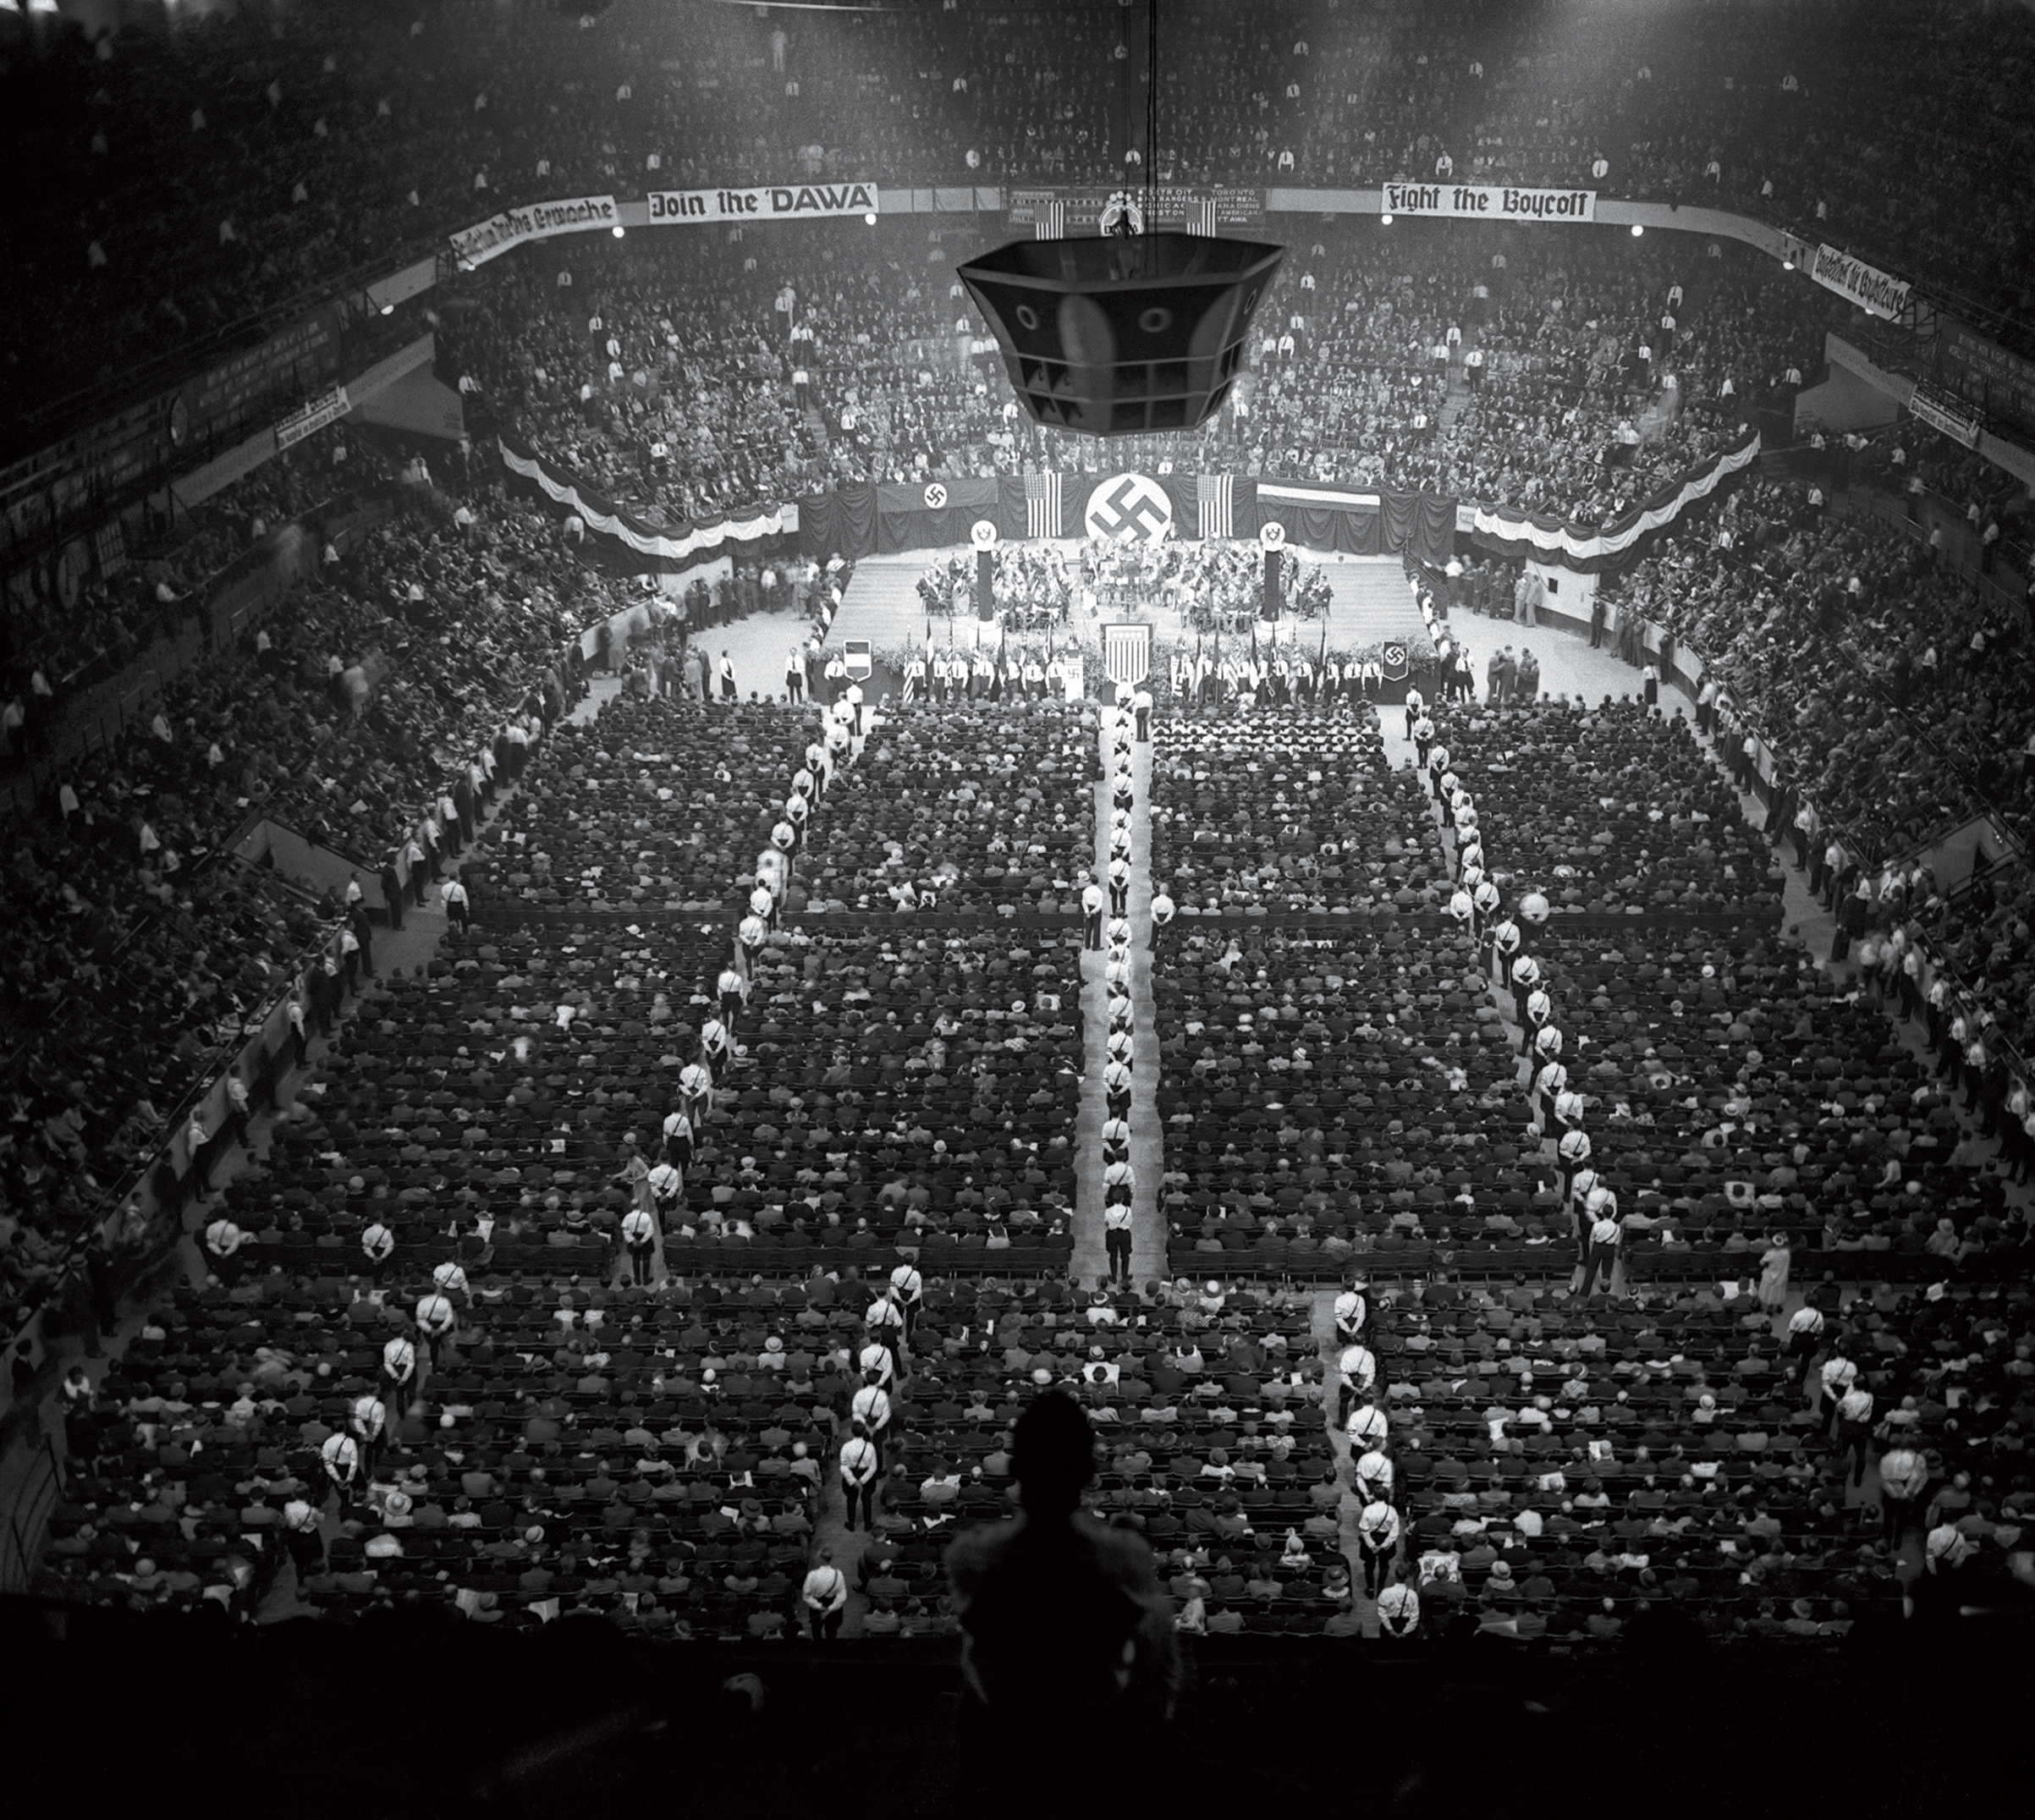 In 1934, some 20,000 people rallied for Friends of New Germany, a U.S. Nazi group, at Madison Square Garden